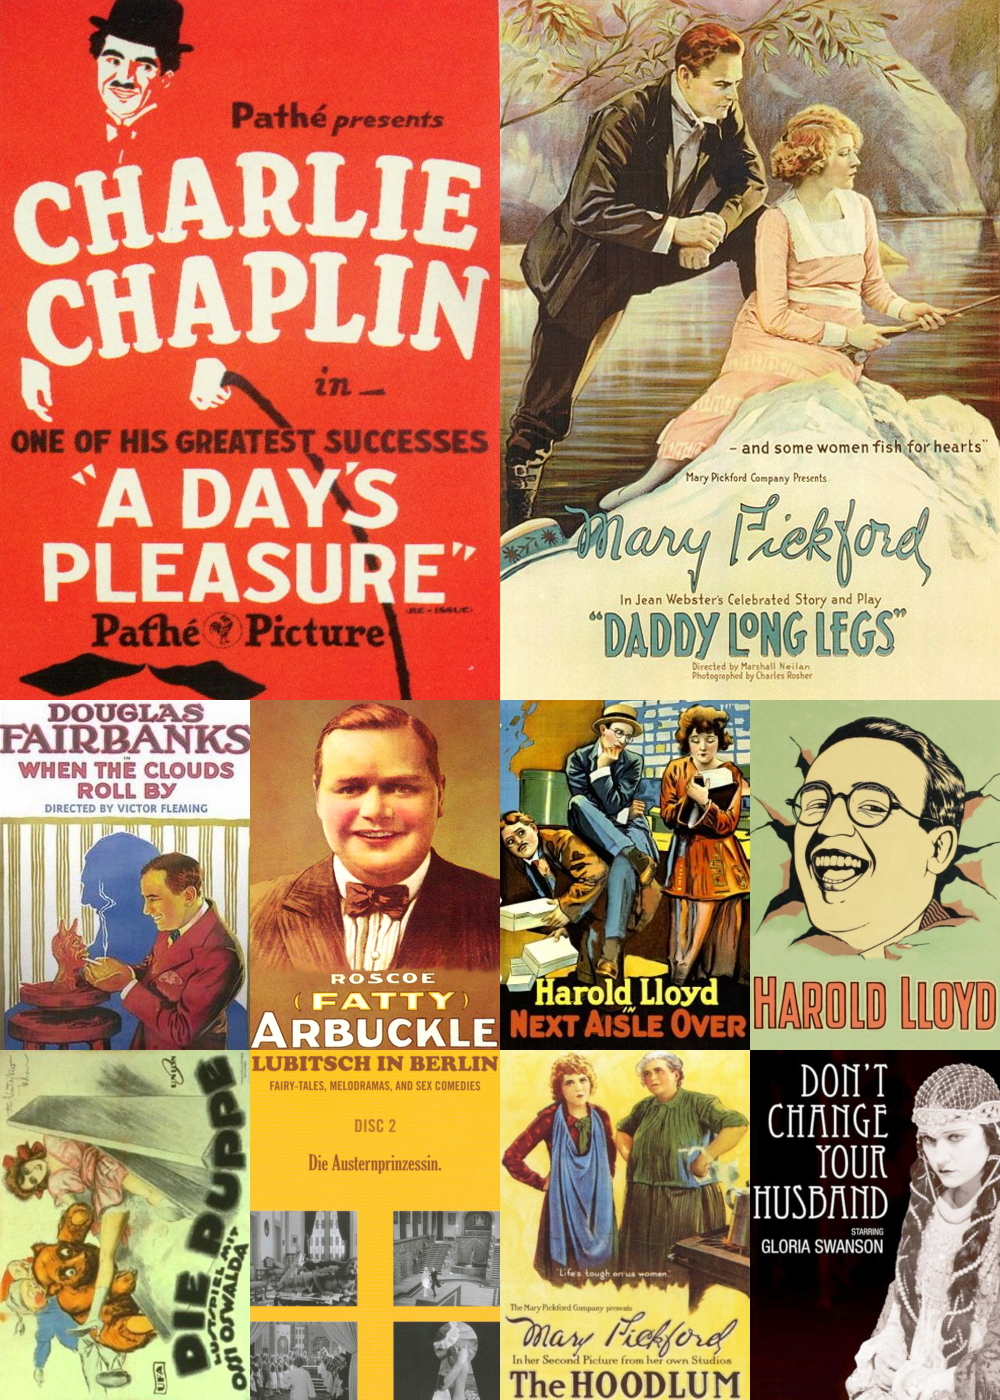 Top 10 Comedy Movies 1919